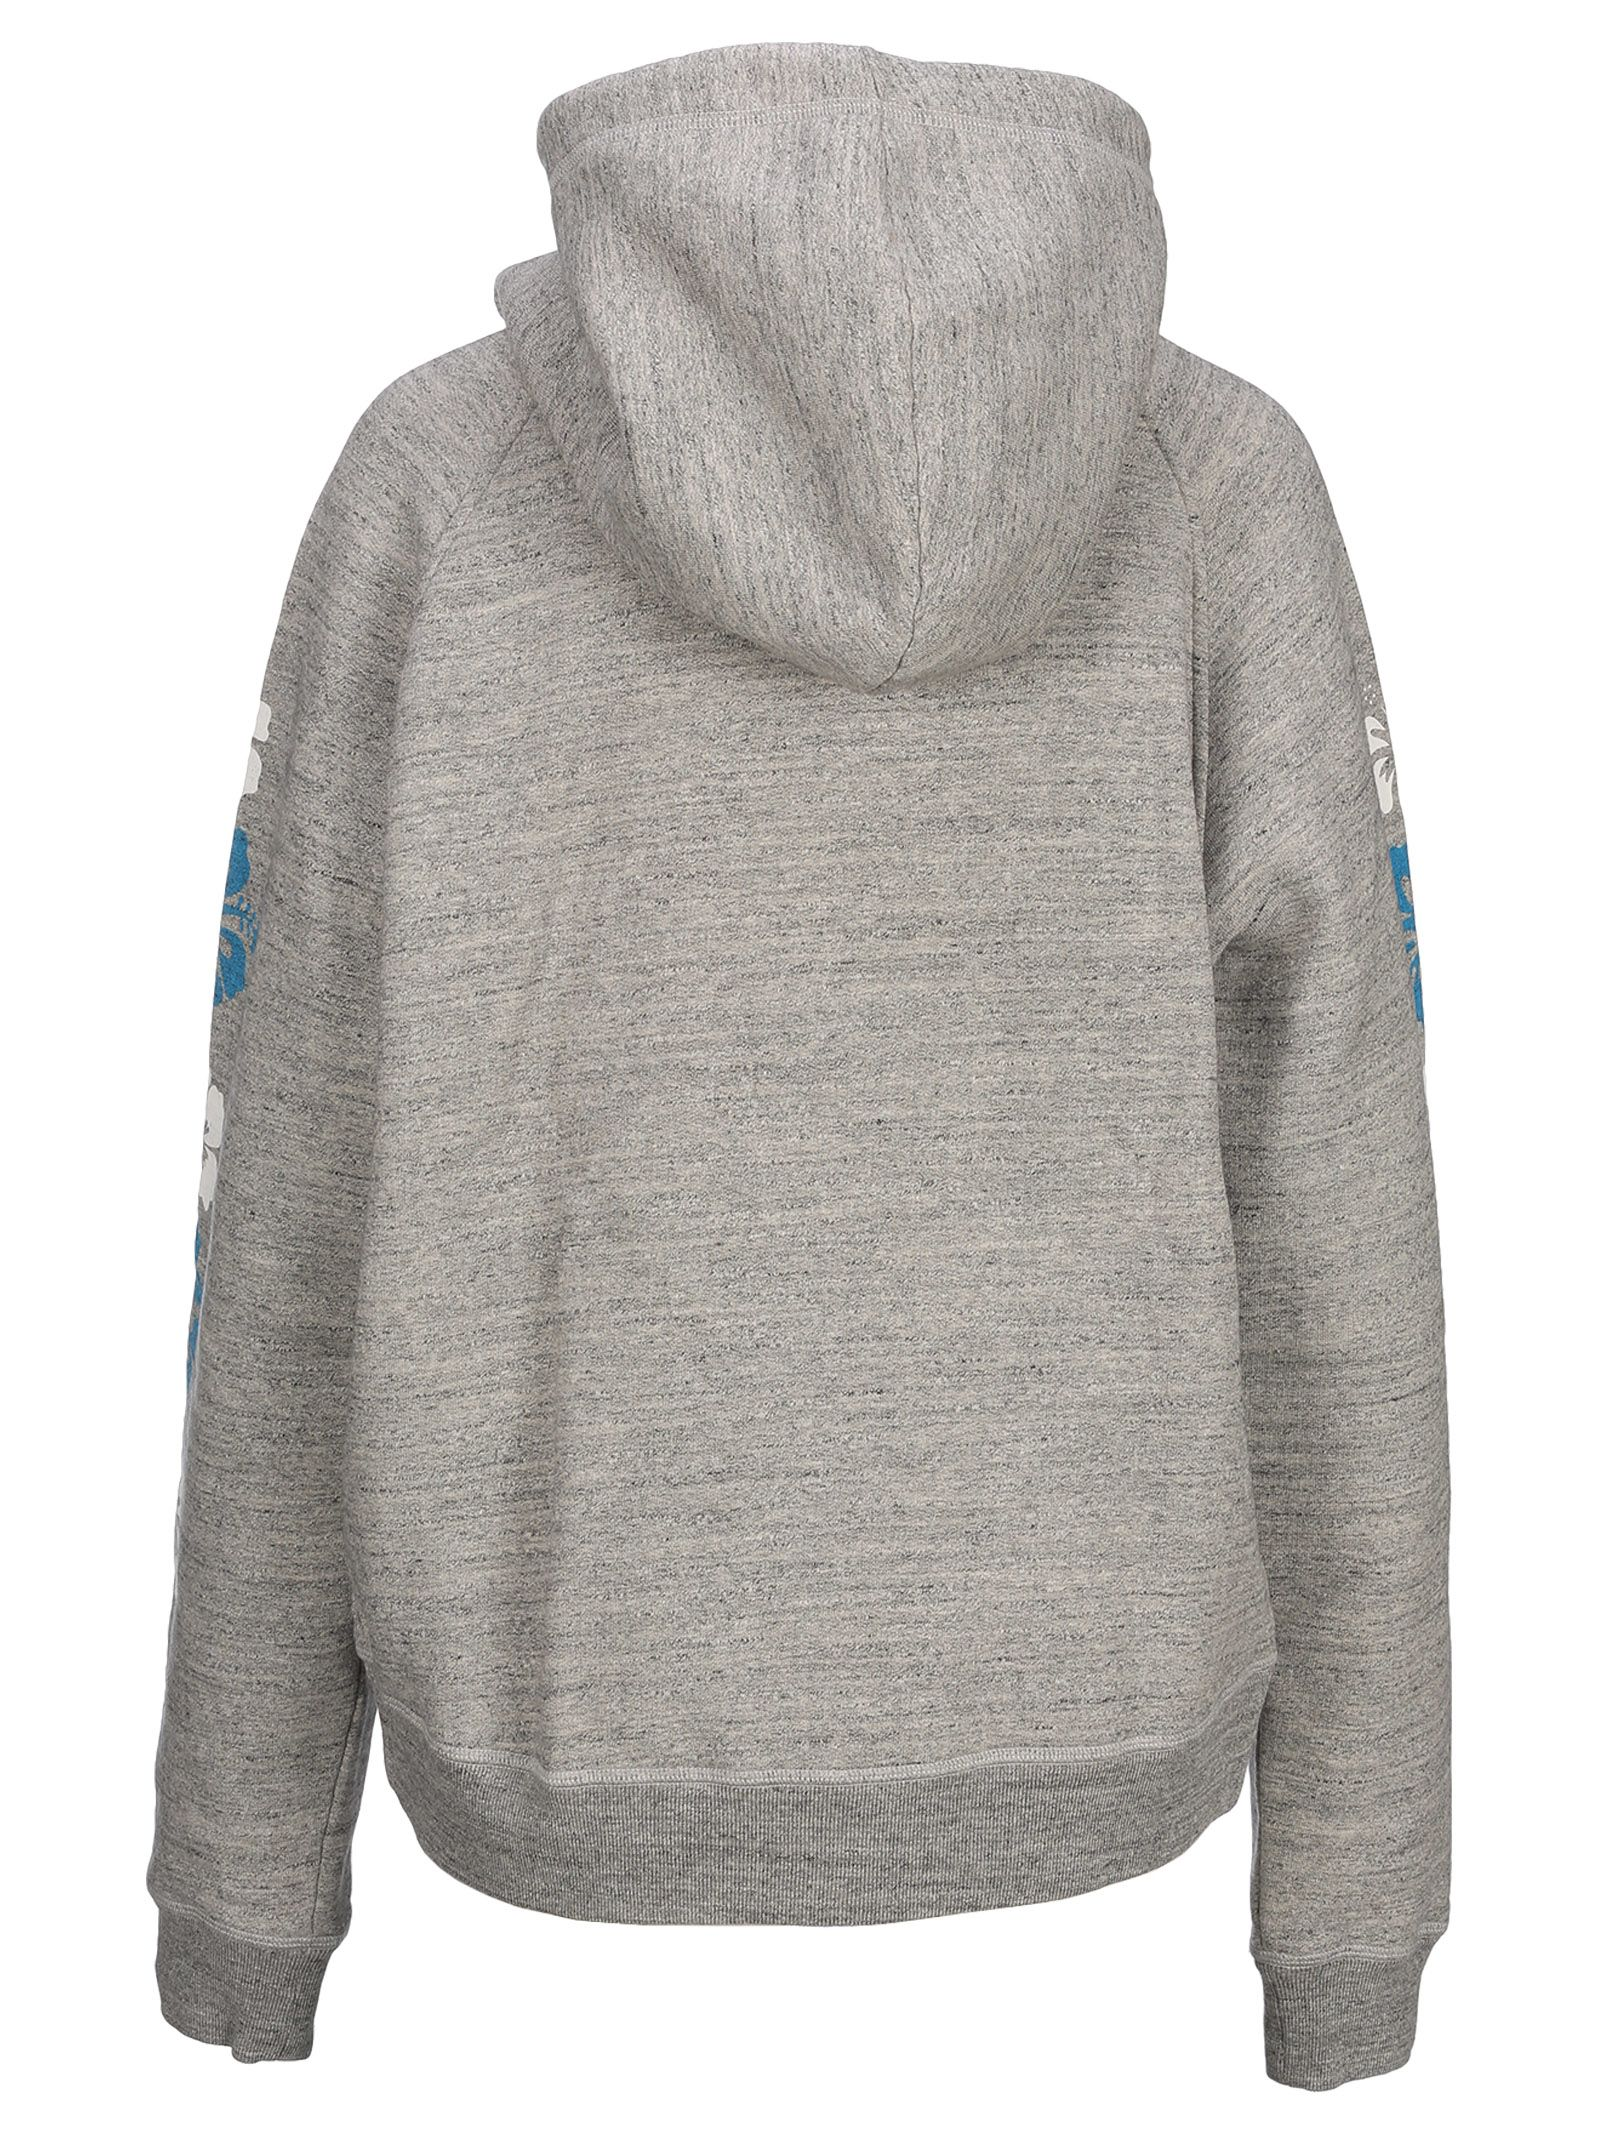 Only Good Vibrations logo hoodie - Grey Dsquared2 Free Shipping Shop Clearance How Much 7WMvHaCs1P